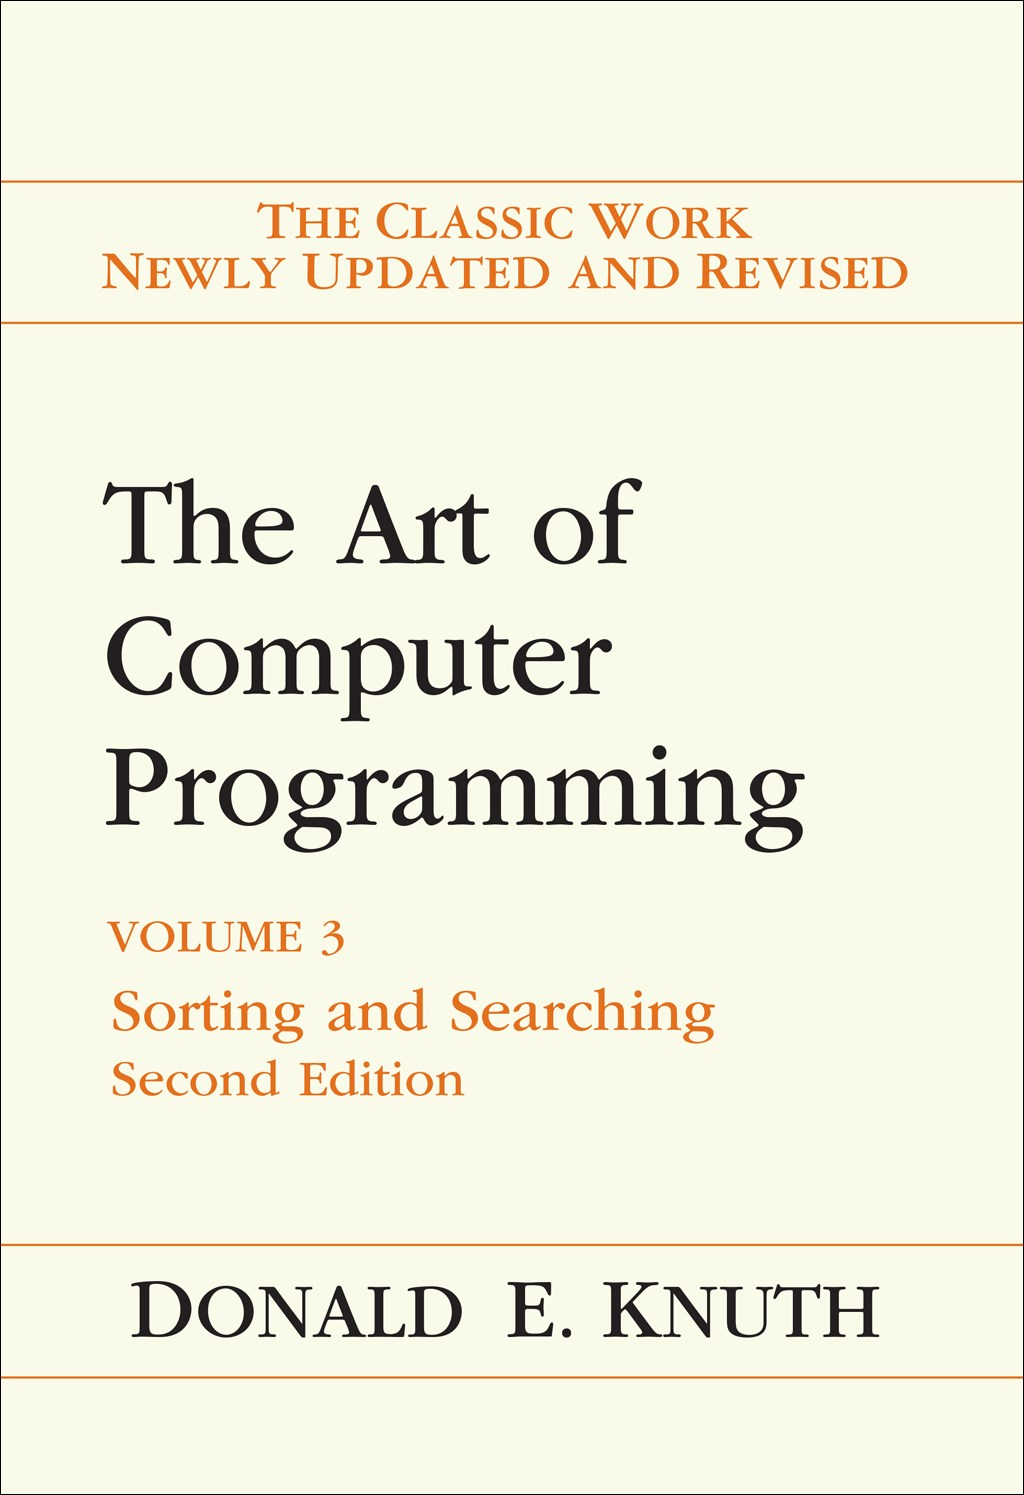 Art of Computer Programming, The: Volume 3: Sorting and Searching, 2nd Edition